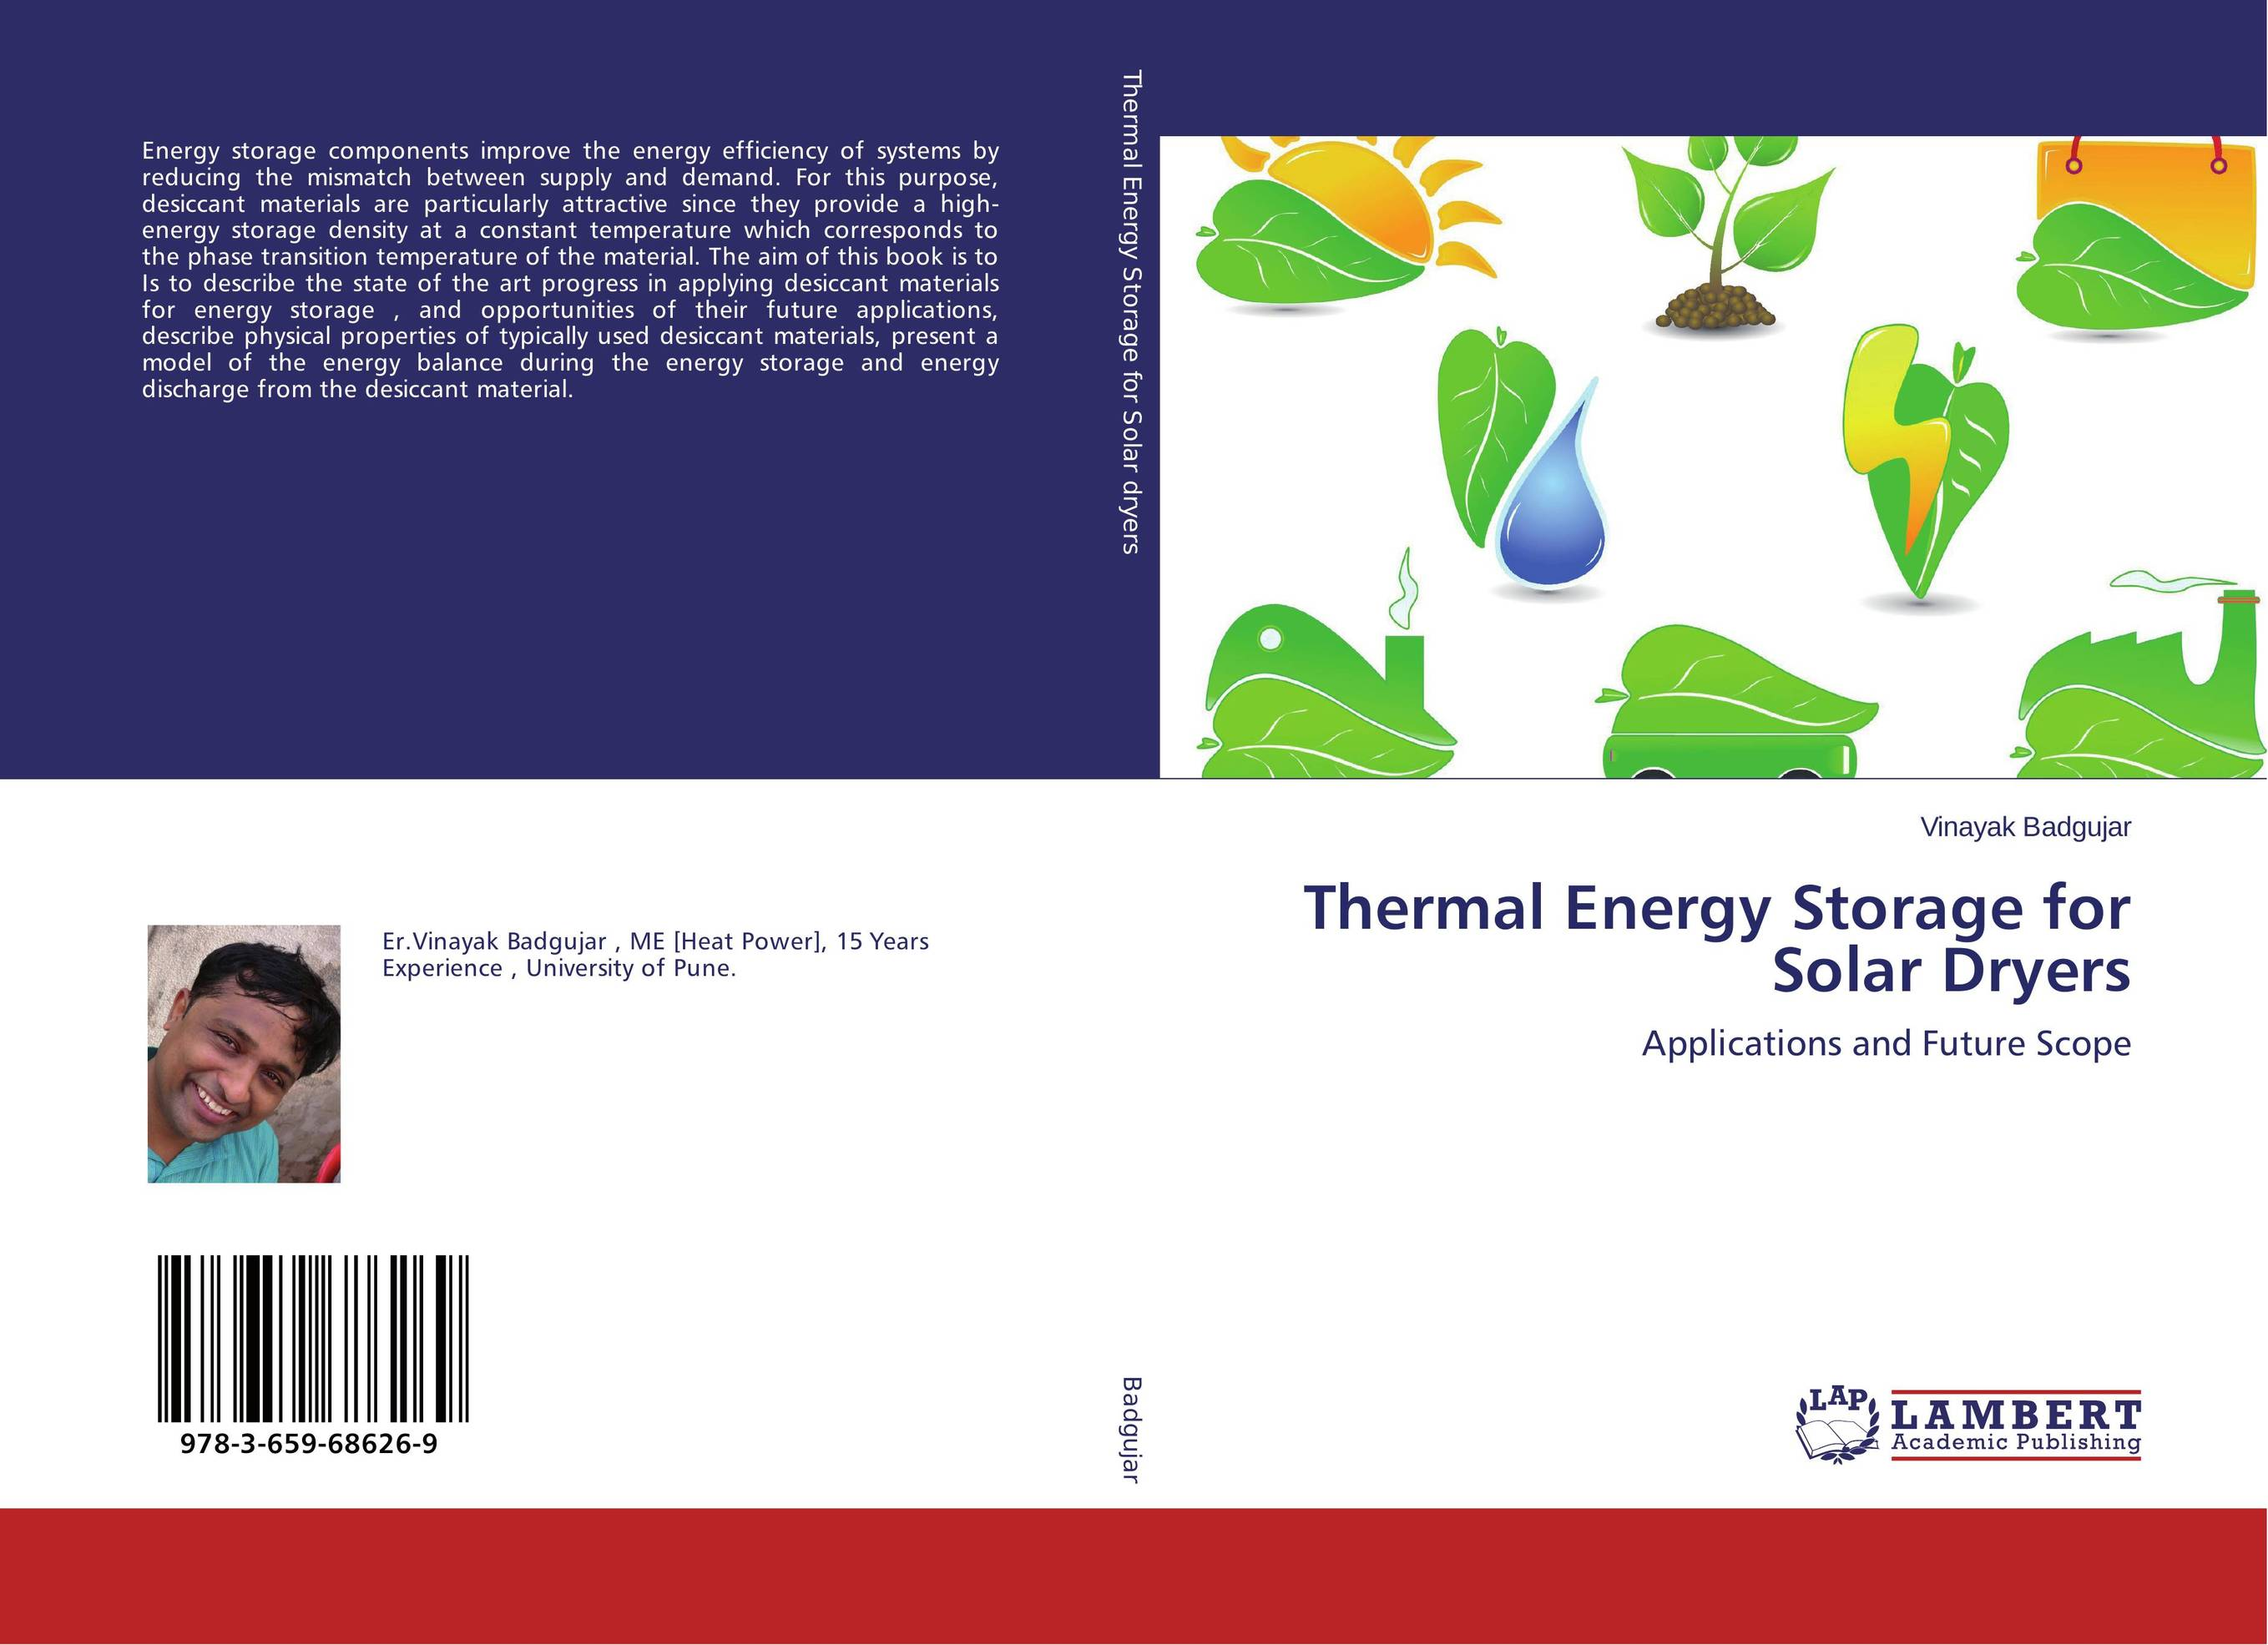 Thermal Energy Storage for Solar Dryers